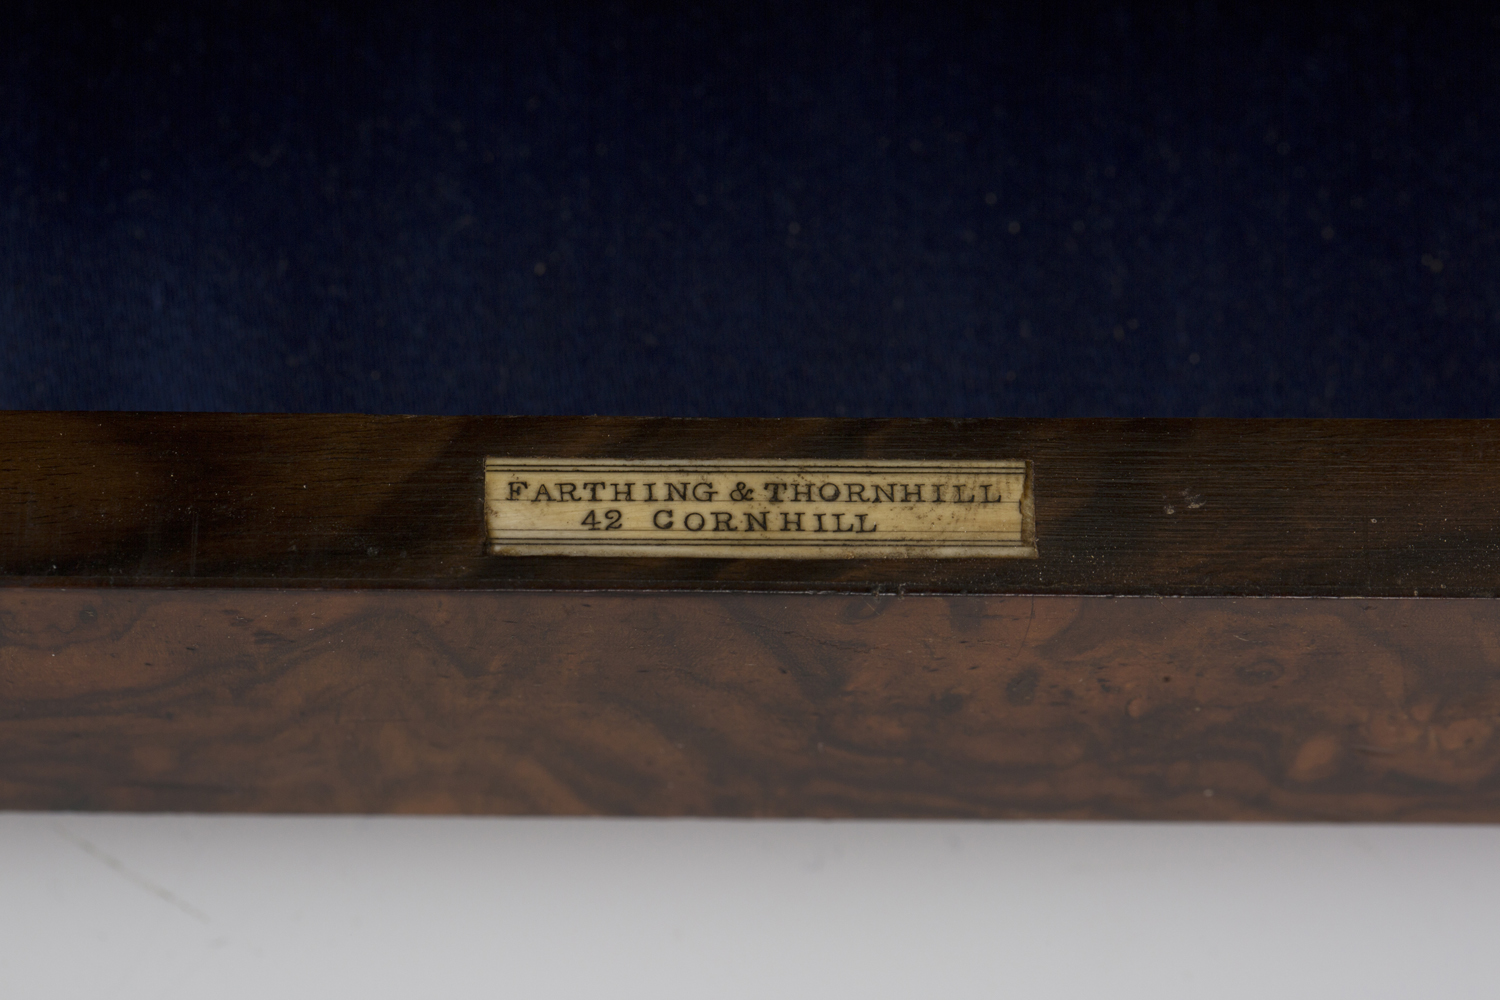 A mid-Victorian burr walnut jewellery box by Farthing & Thornhill, 42 Cornhill, the hinged lid - Image 3 of 5